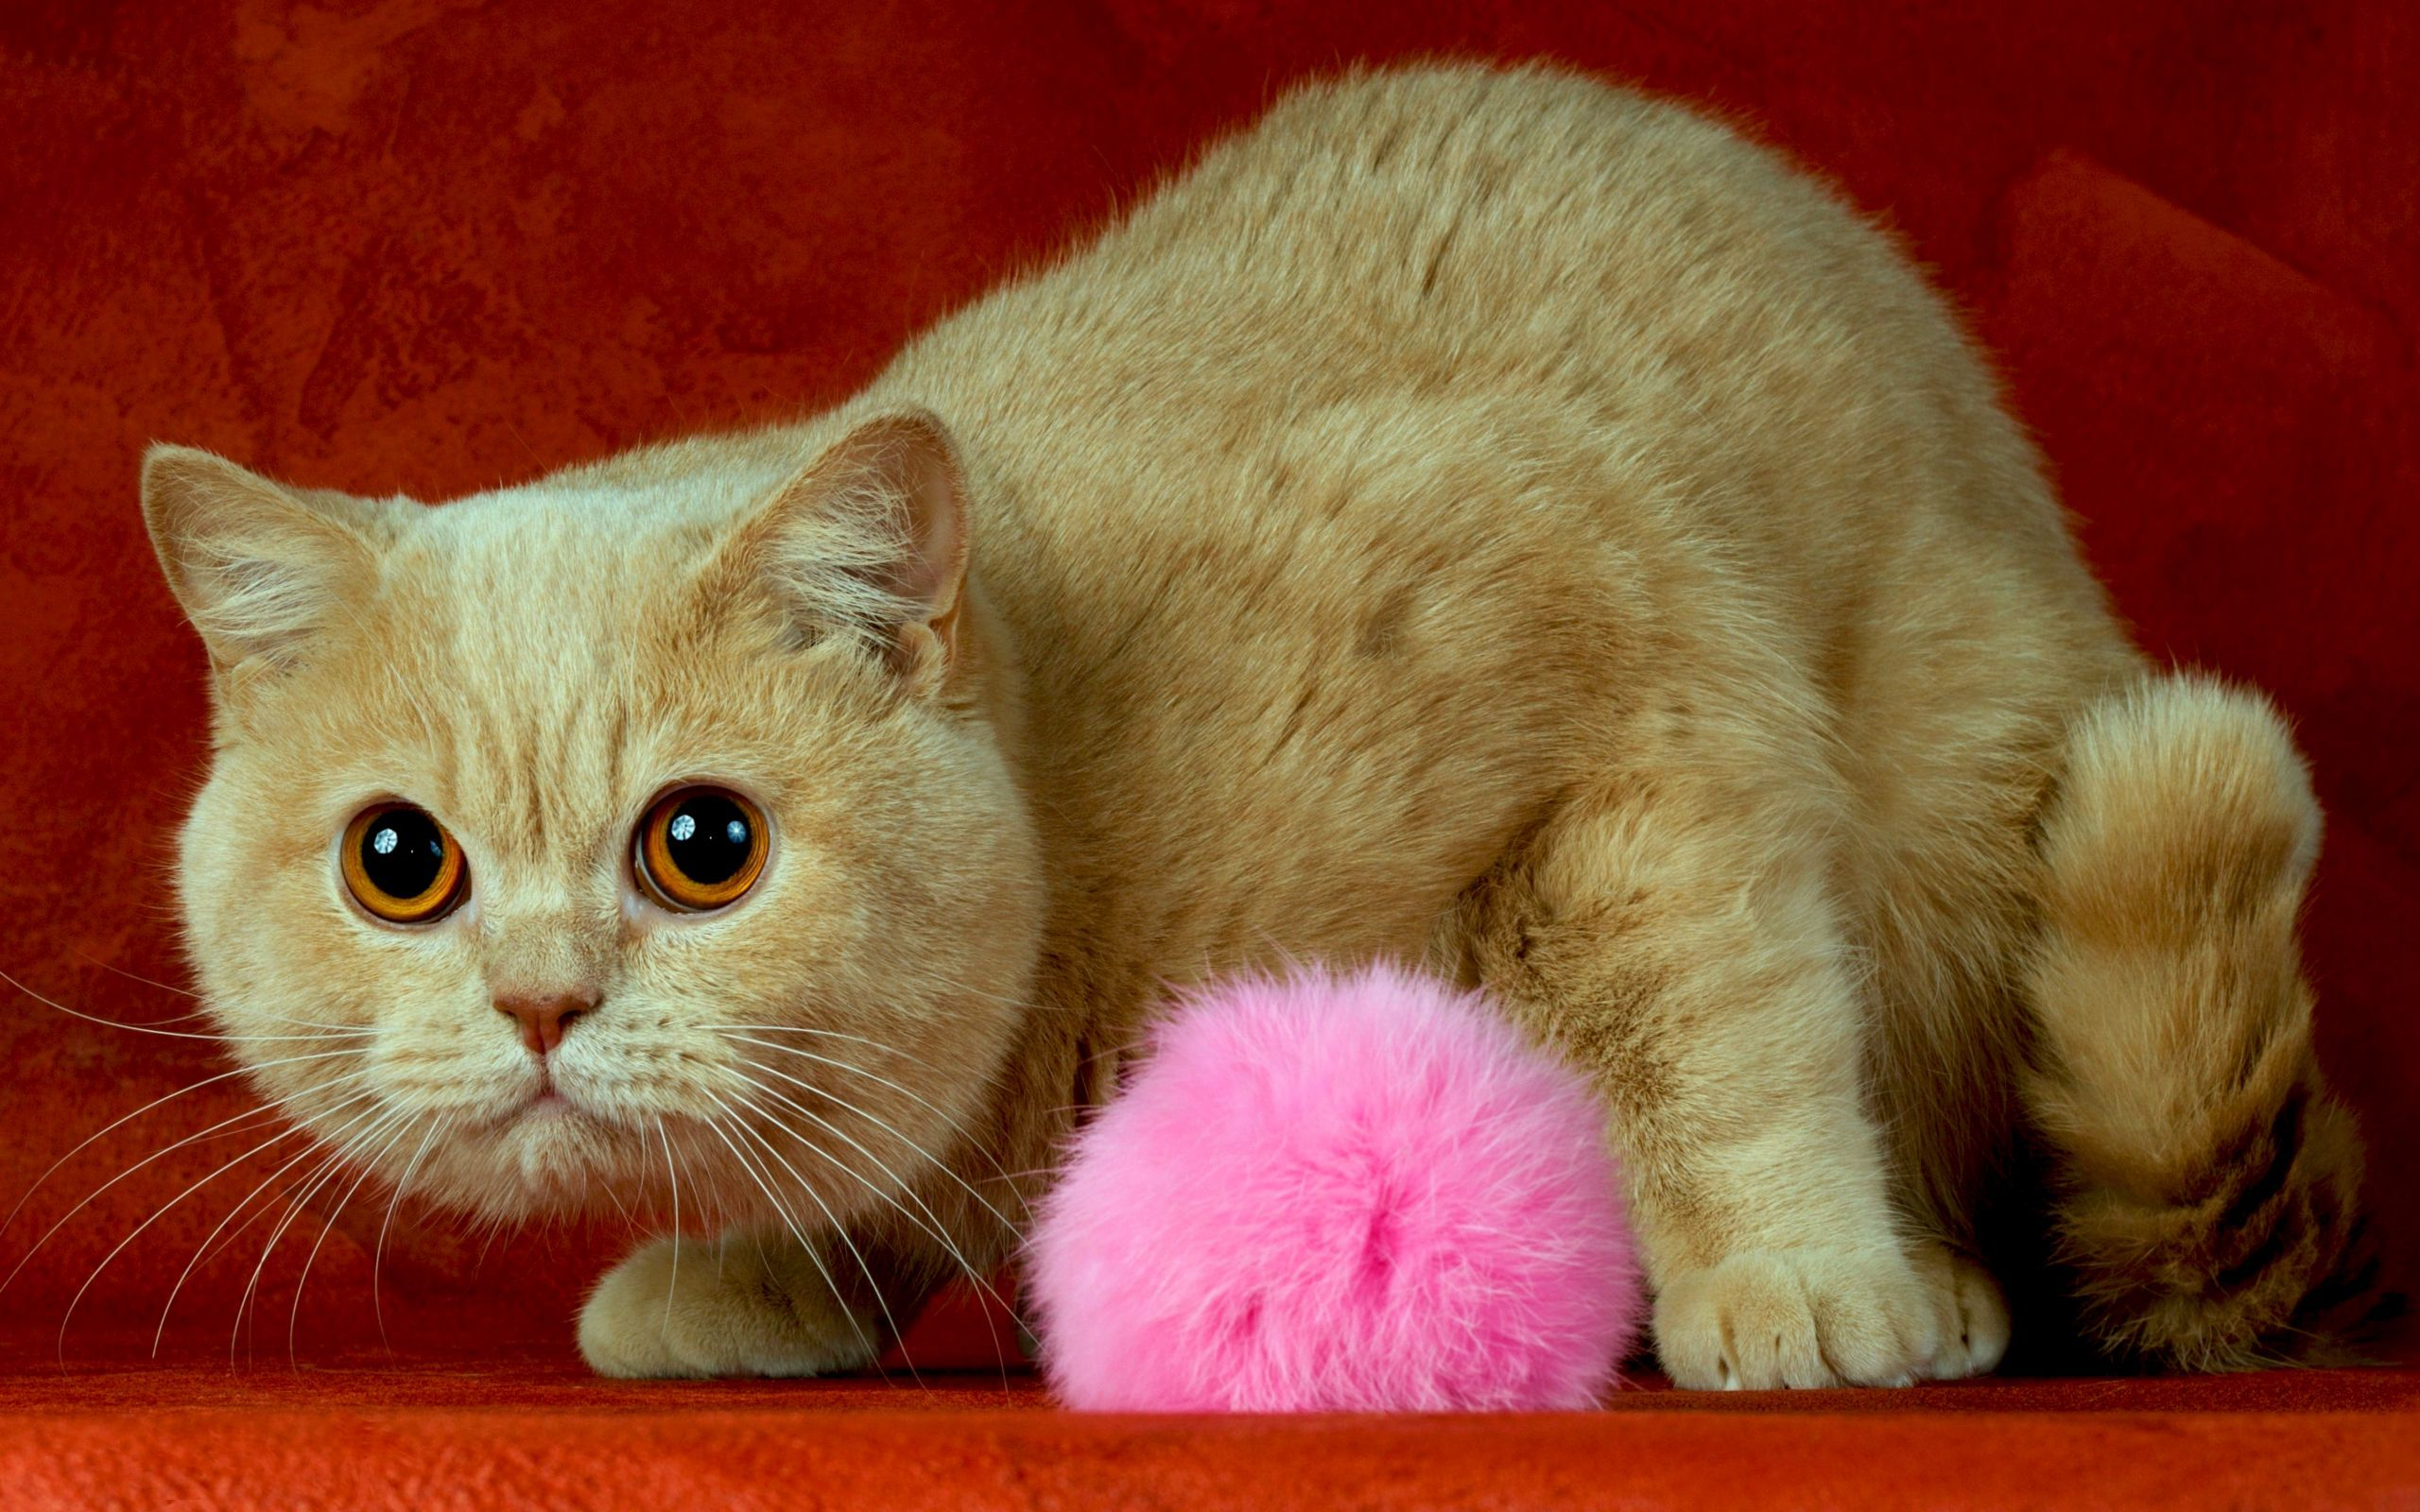 49461 download wallpaper Animals, Cats screensavers and pictures for free